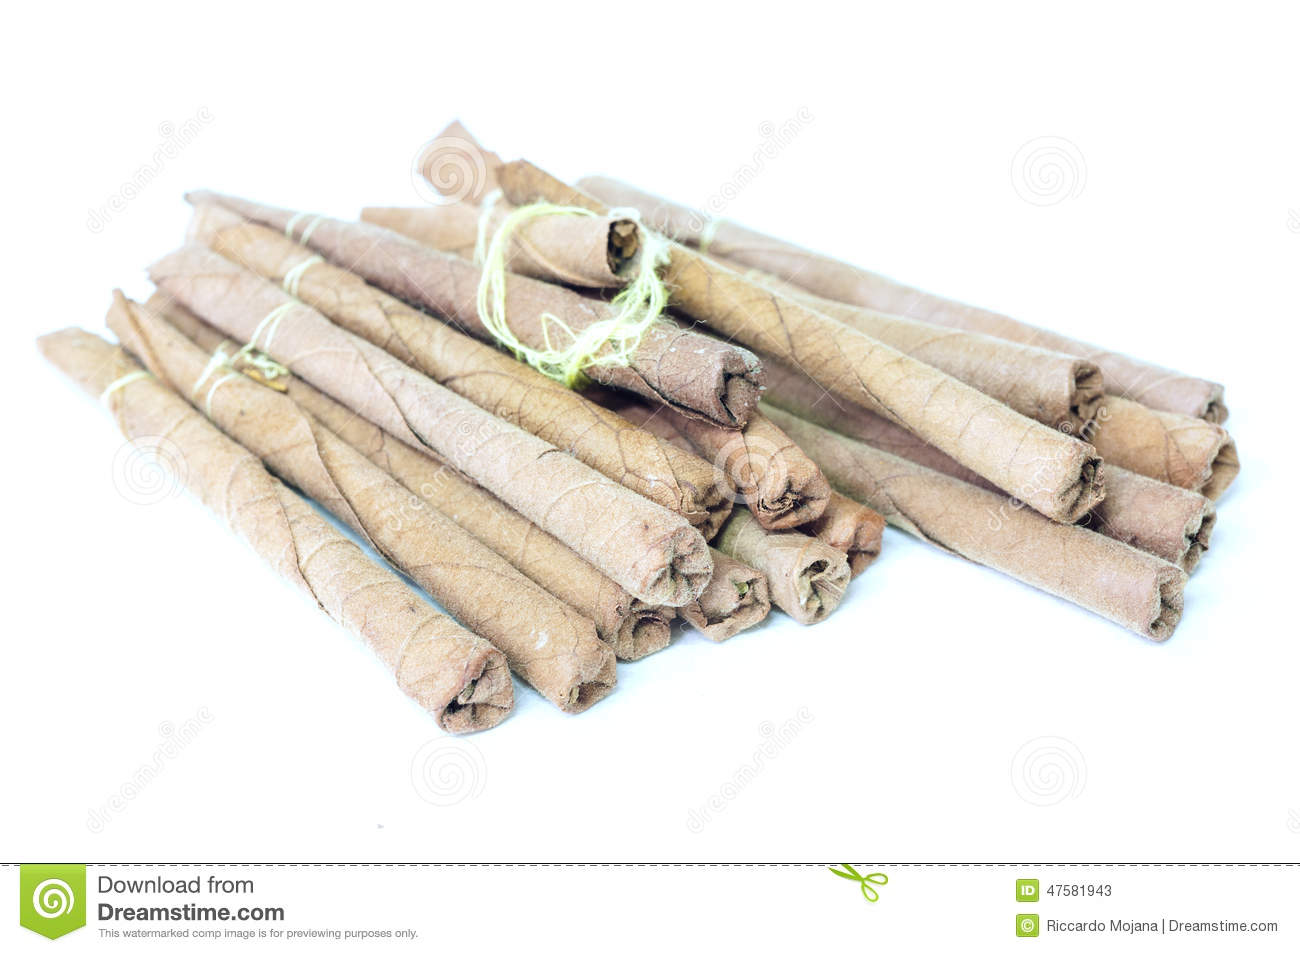 Tobacco cigarettes stock image  Image of objects, leaf - 47581943